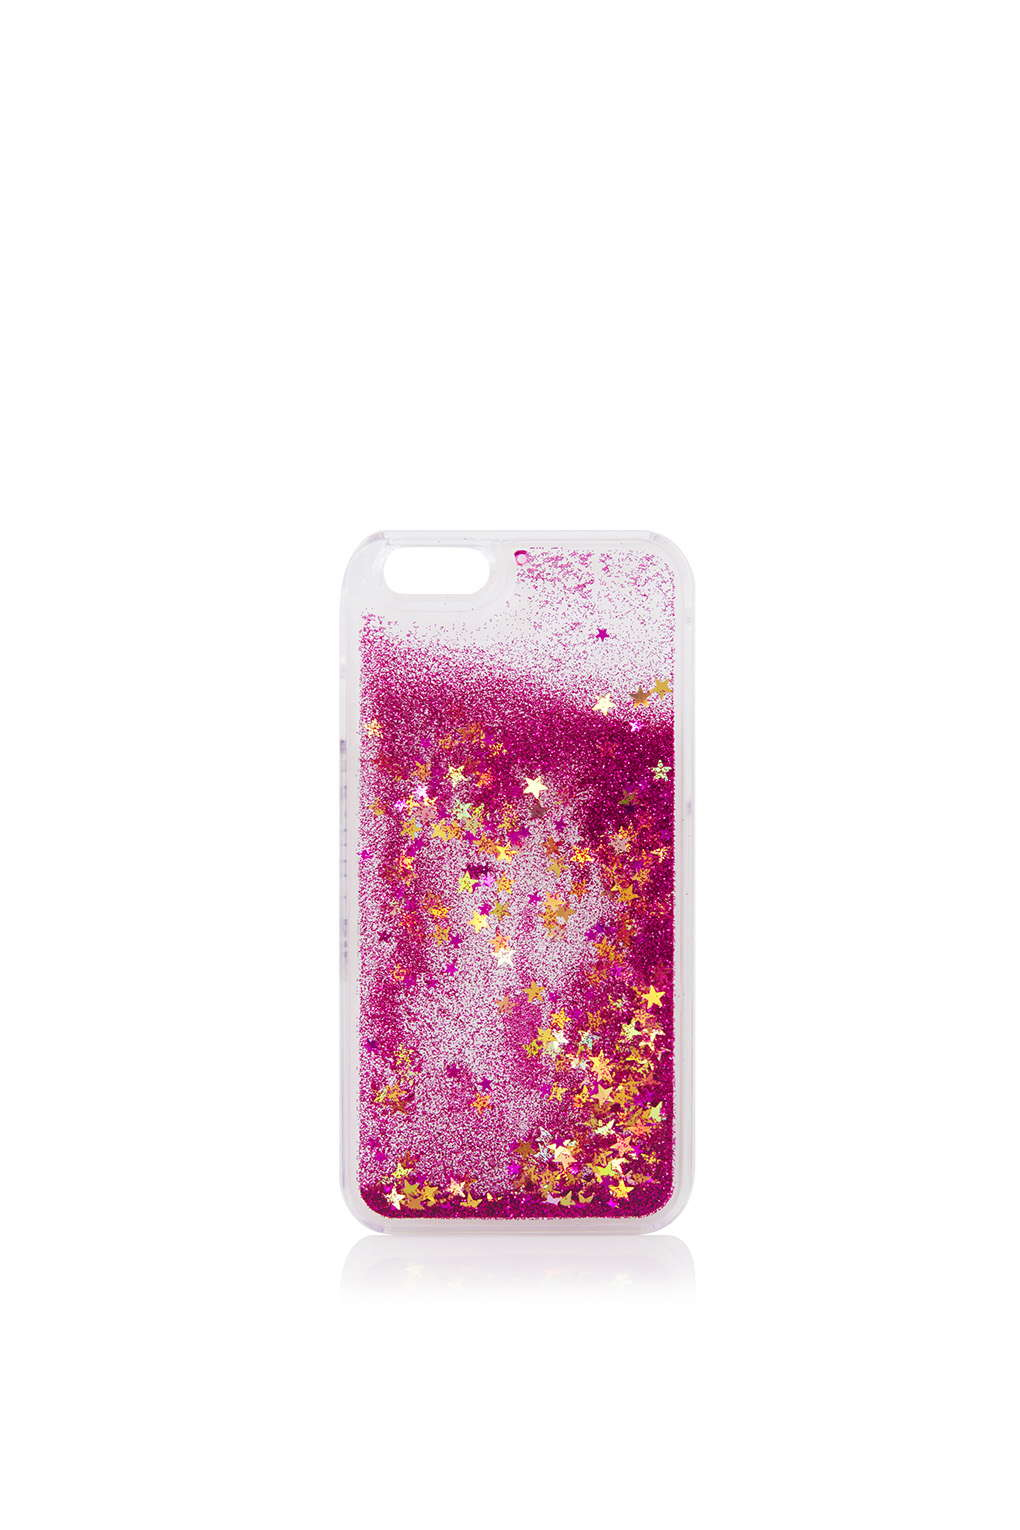 online retailer b43b3 1db2e TOPSHOP Pink Glitter Iphone 6 Case By Skinnydip in Pink - Lyst